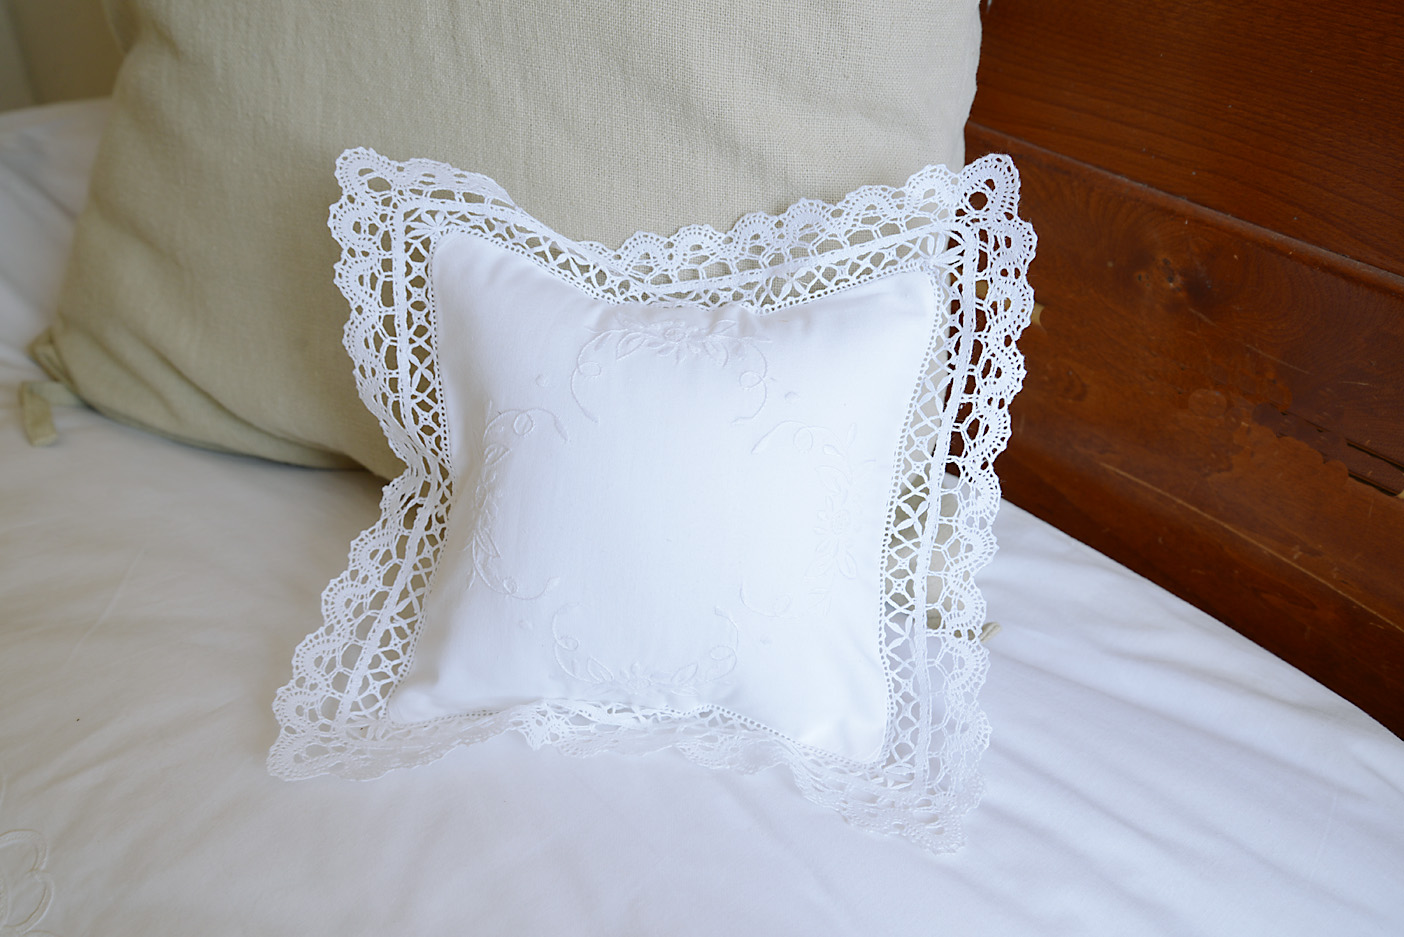 miniature baby pillow lace trimming t